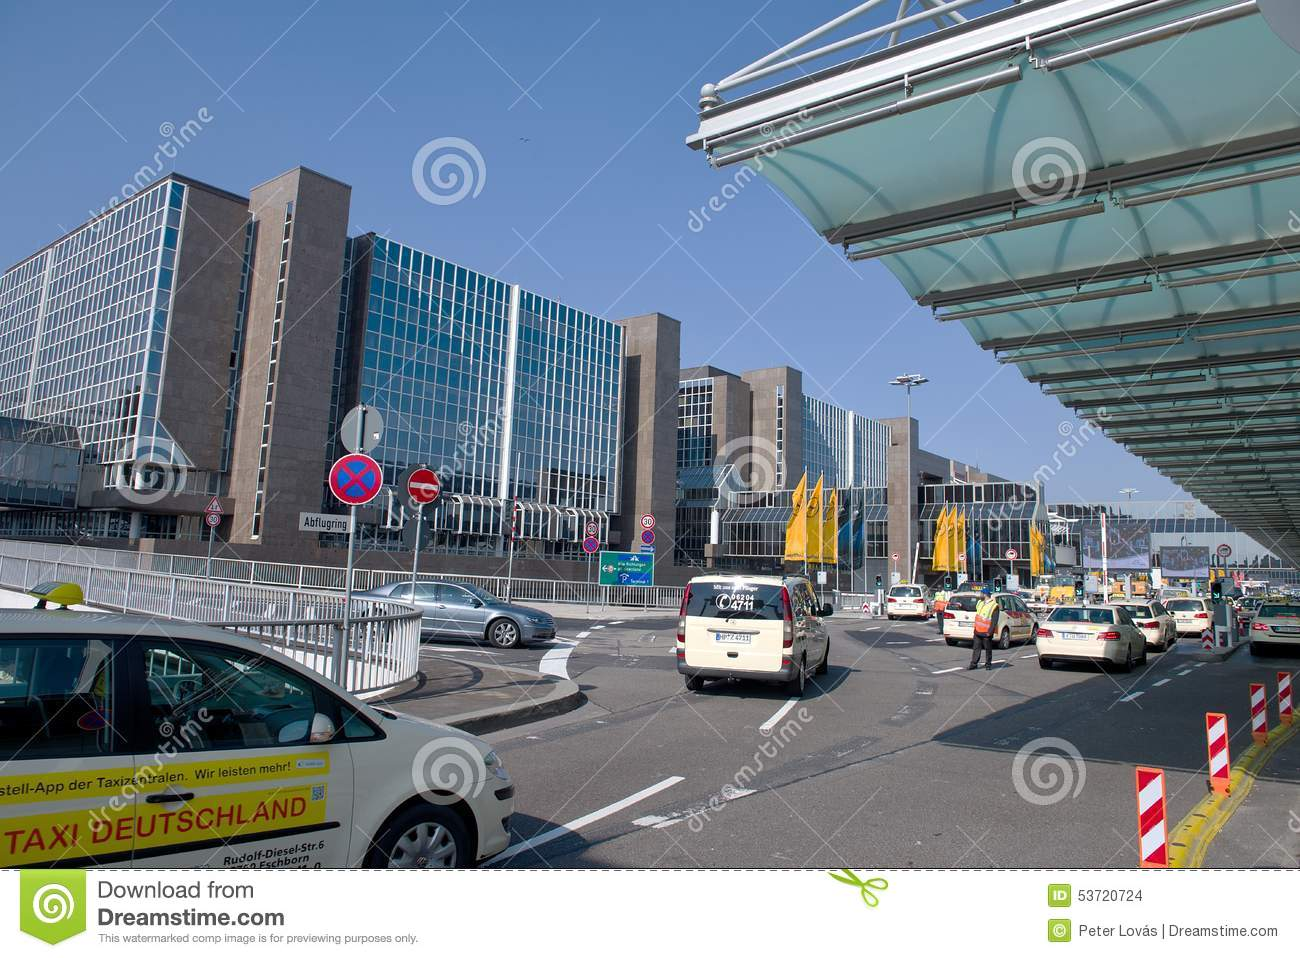 frankfurt airport terminal 1 hotels near the airport editorial stock image image 53720724. Black Bedroom Furniture Sets. Home Design Ideas